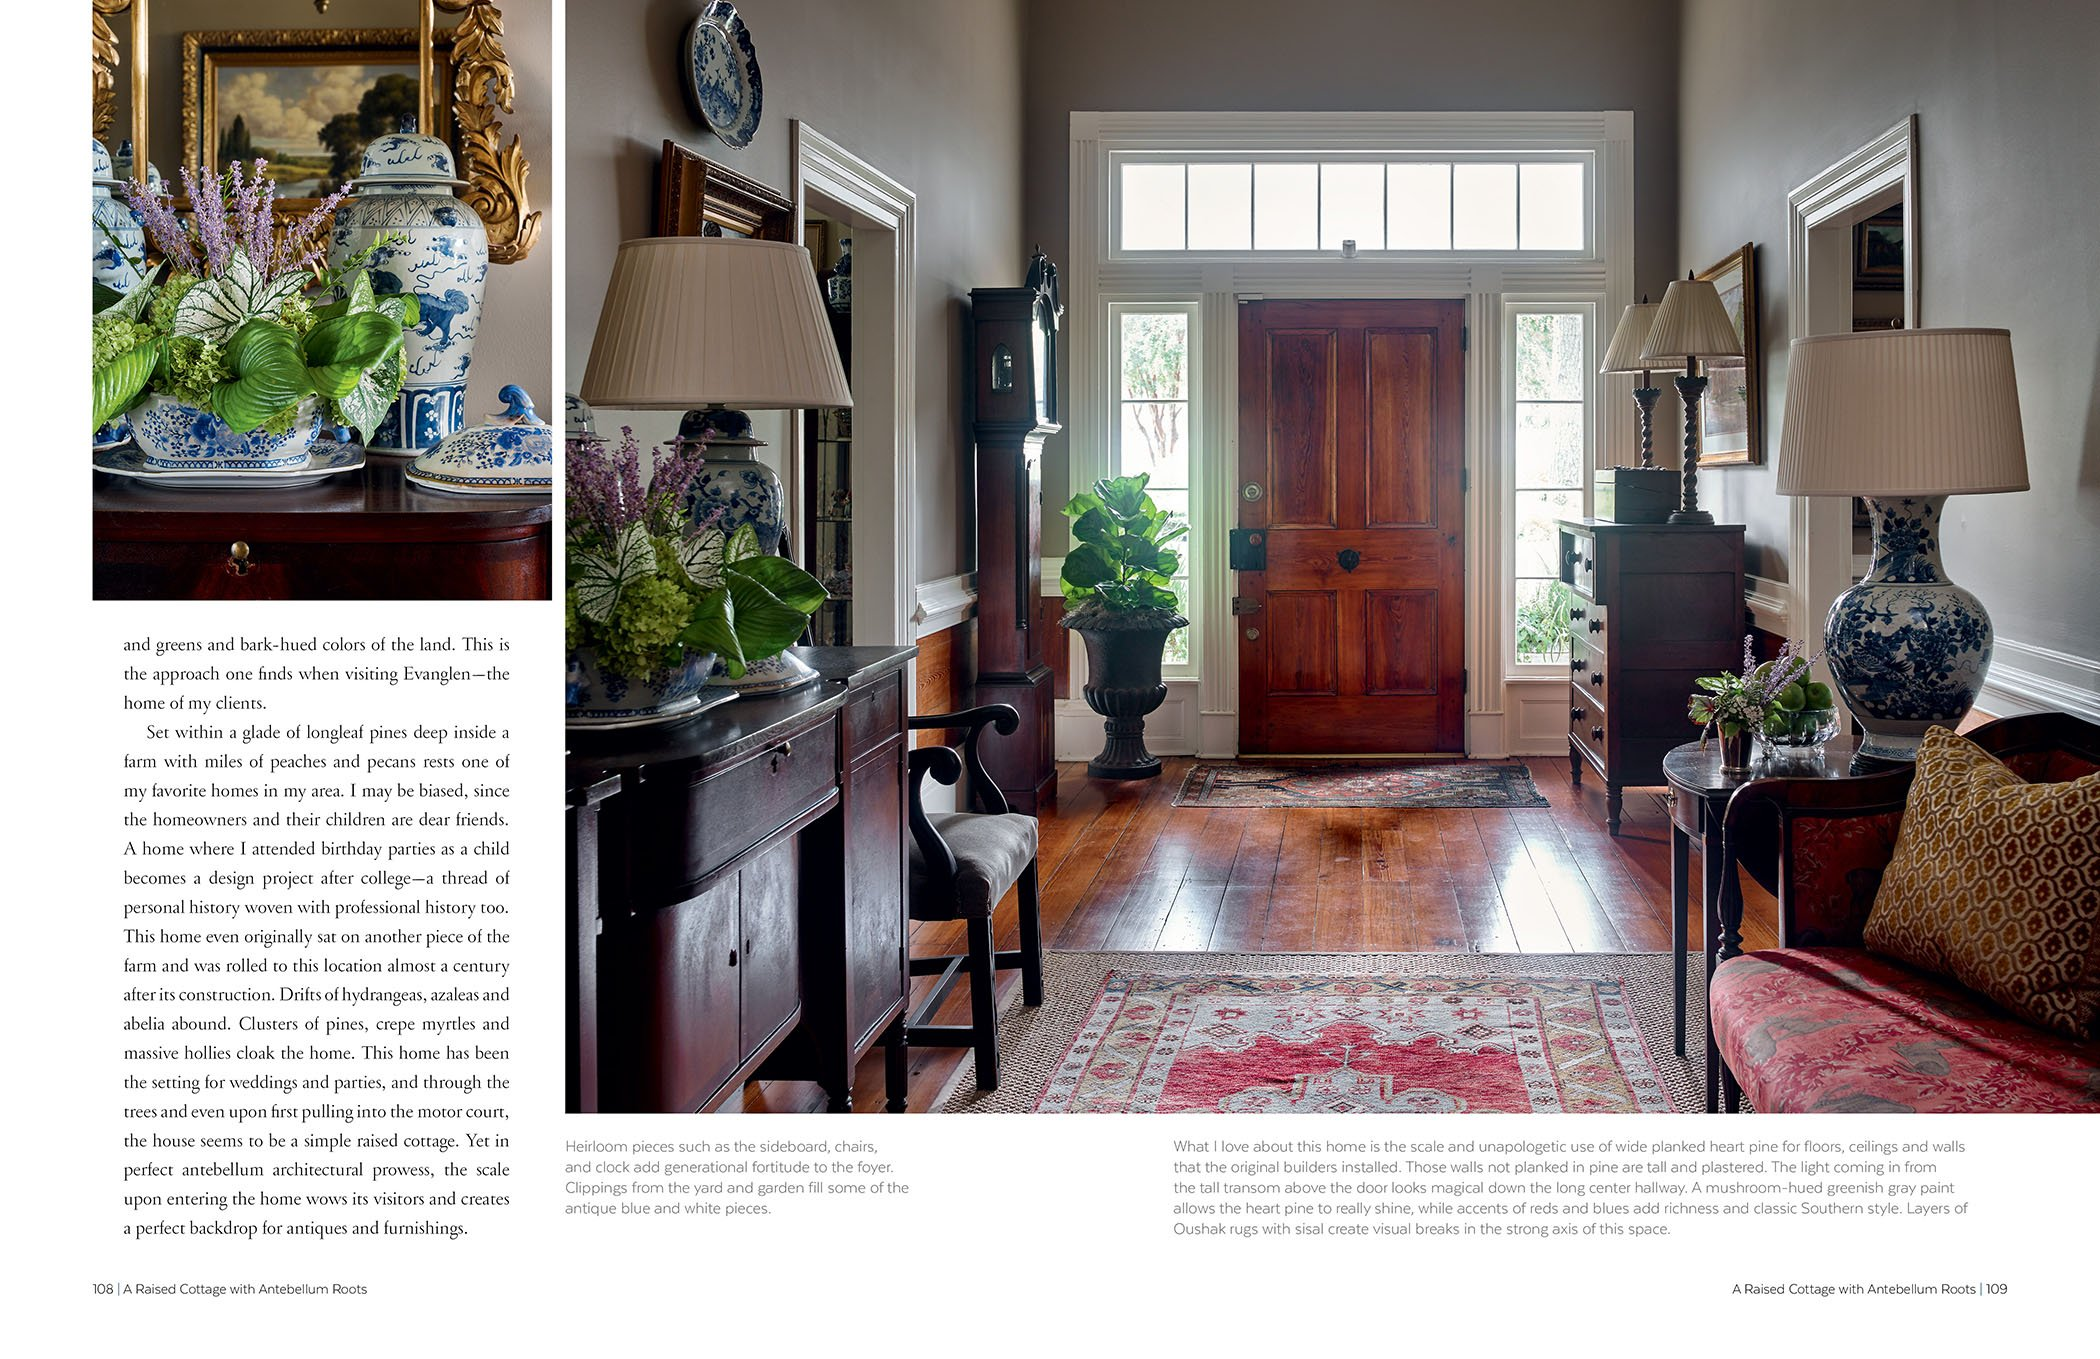 a place to call home timeless southern charm james t farmer